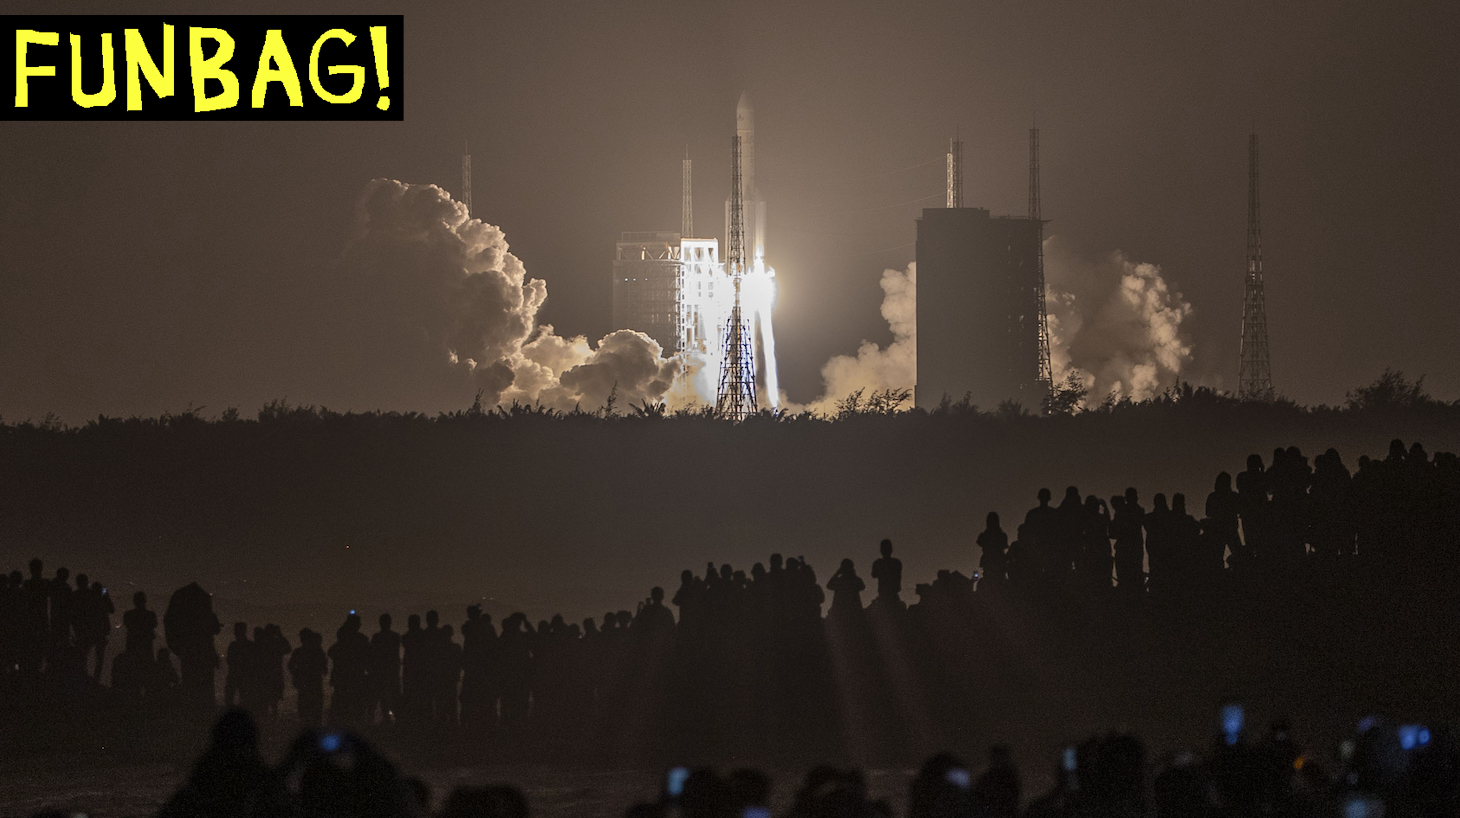 A Long March 5 rocket carrying China's Chang'e-5 lunar probe launches from the Wenchang Space Center on China's southern Hainan Island on November 24, 2020, on a mission to bring back lunar rocks, the first attempt by any nation to retrieve samples from the moon in four decades. - (Photo by STR / AFP) / China OUT (Photo by STR/AFP via Getty Images)